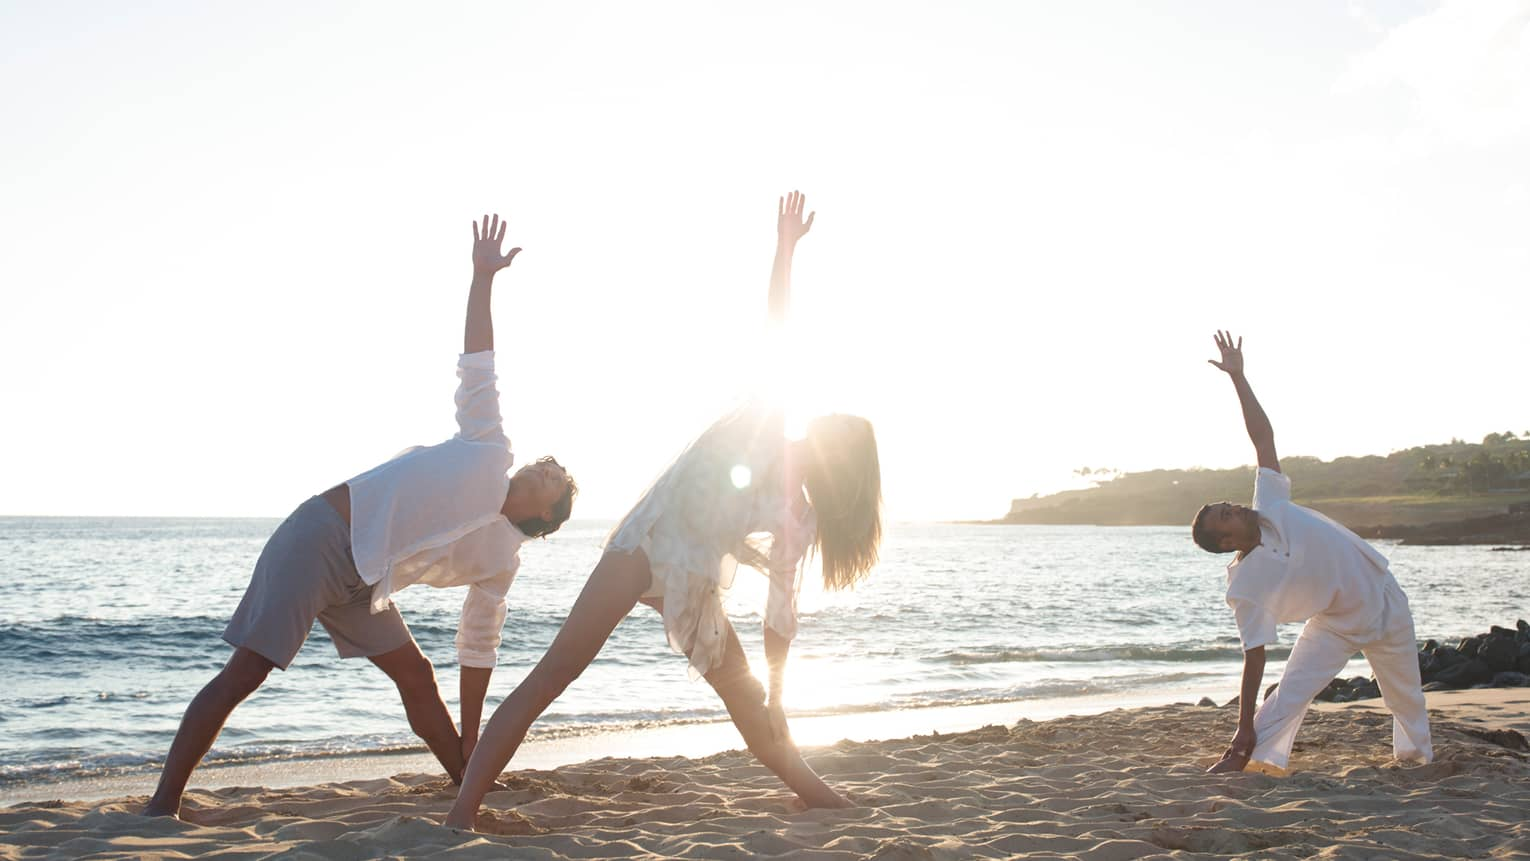 Three people stretch in yoga pose on sand beach at sunrise